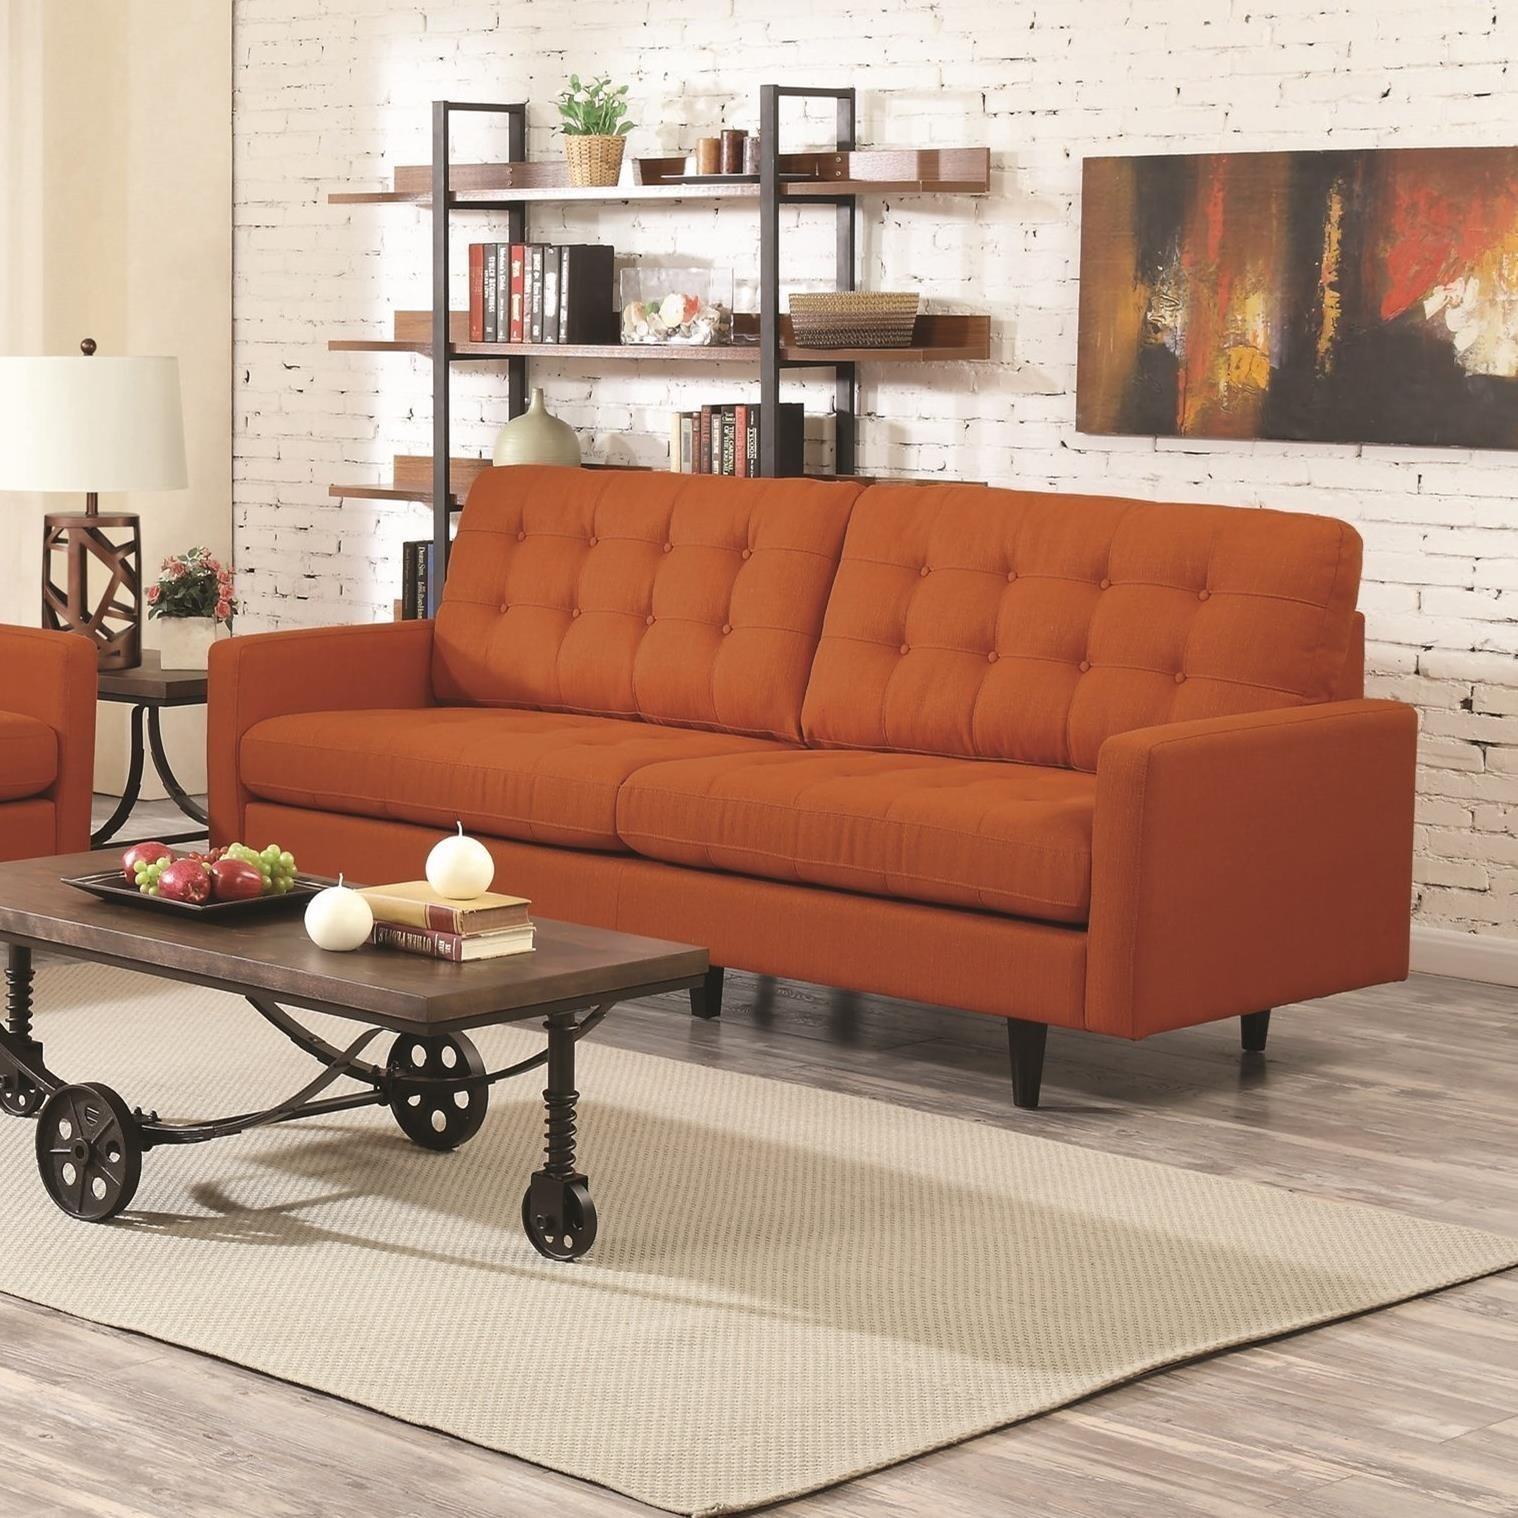 Kesson Mid Century Modern Sofa Quality Furniture At Affordable Prices In Philadelphia Main Line Pa